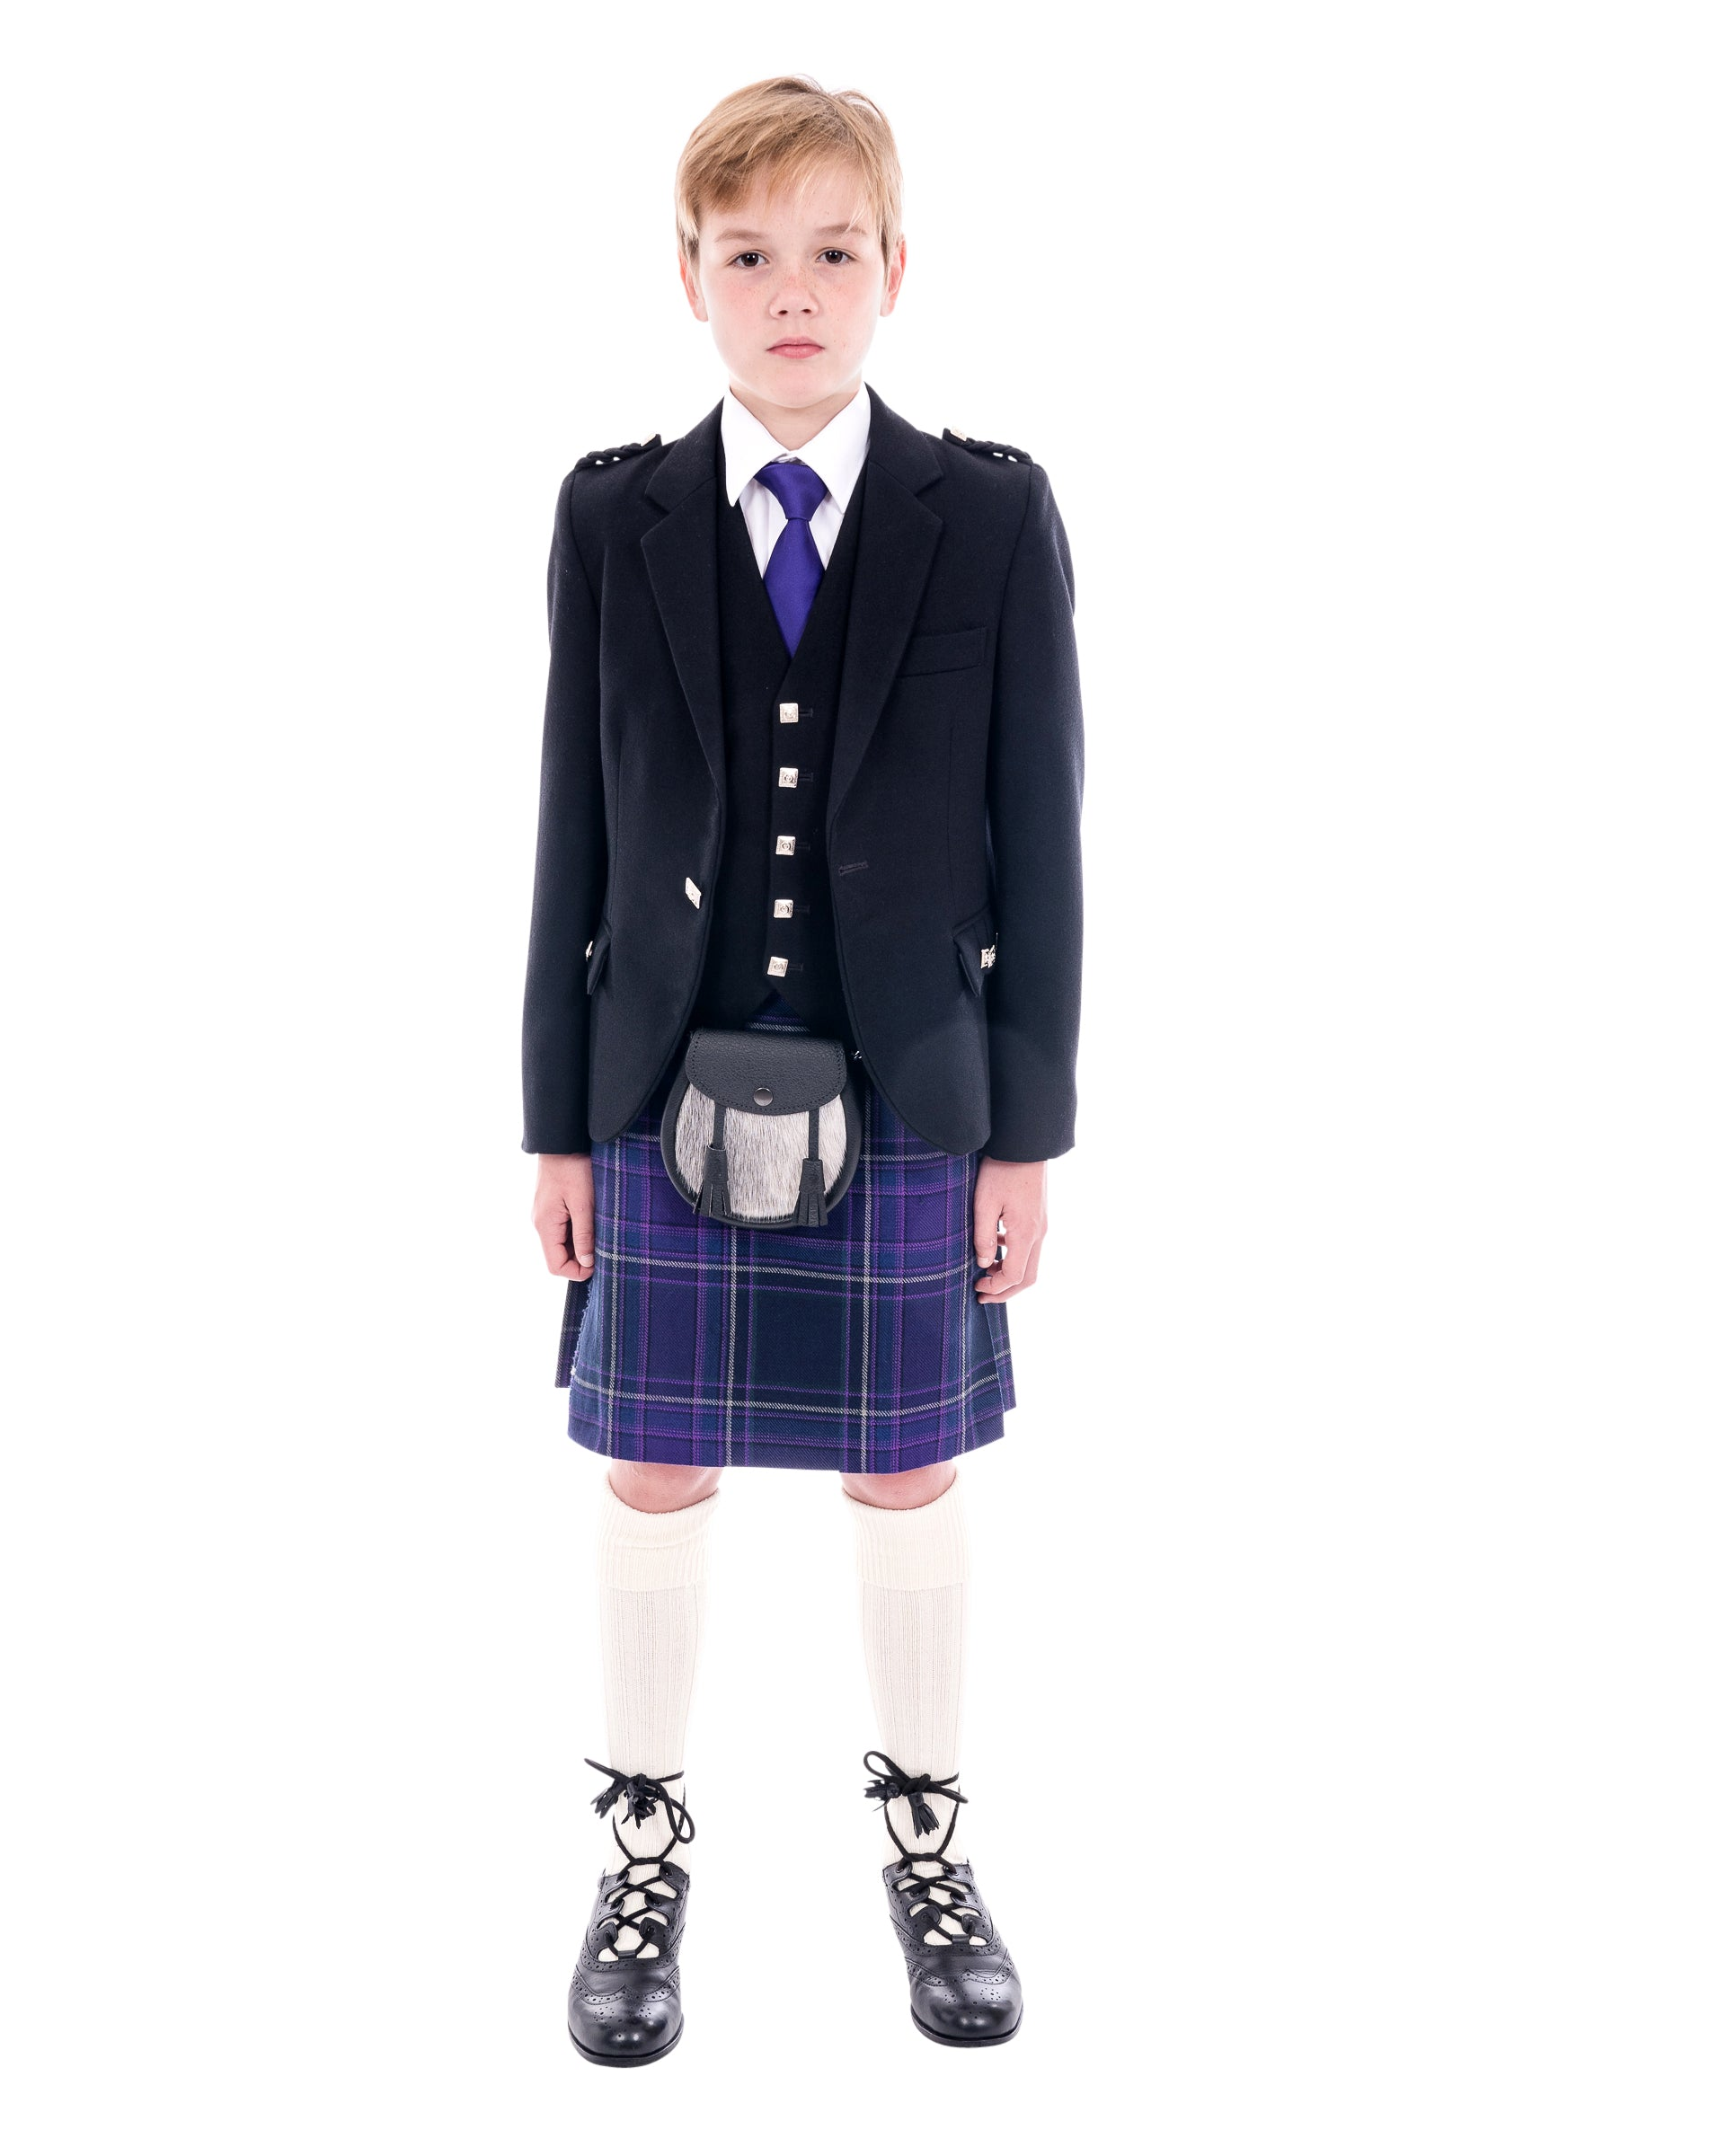 Boys Black Argyll kilt hire outfit with Galloway Heather tartan kilt. Available to hire from Anderson Kilts Dumfries